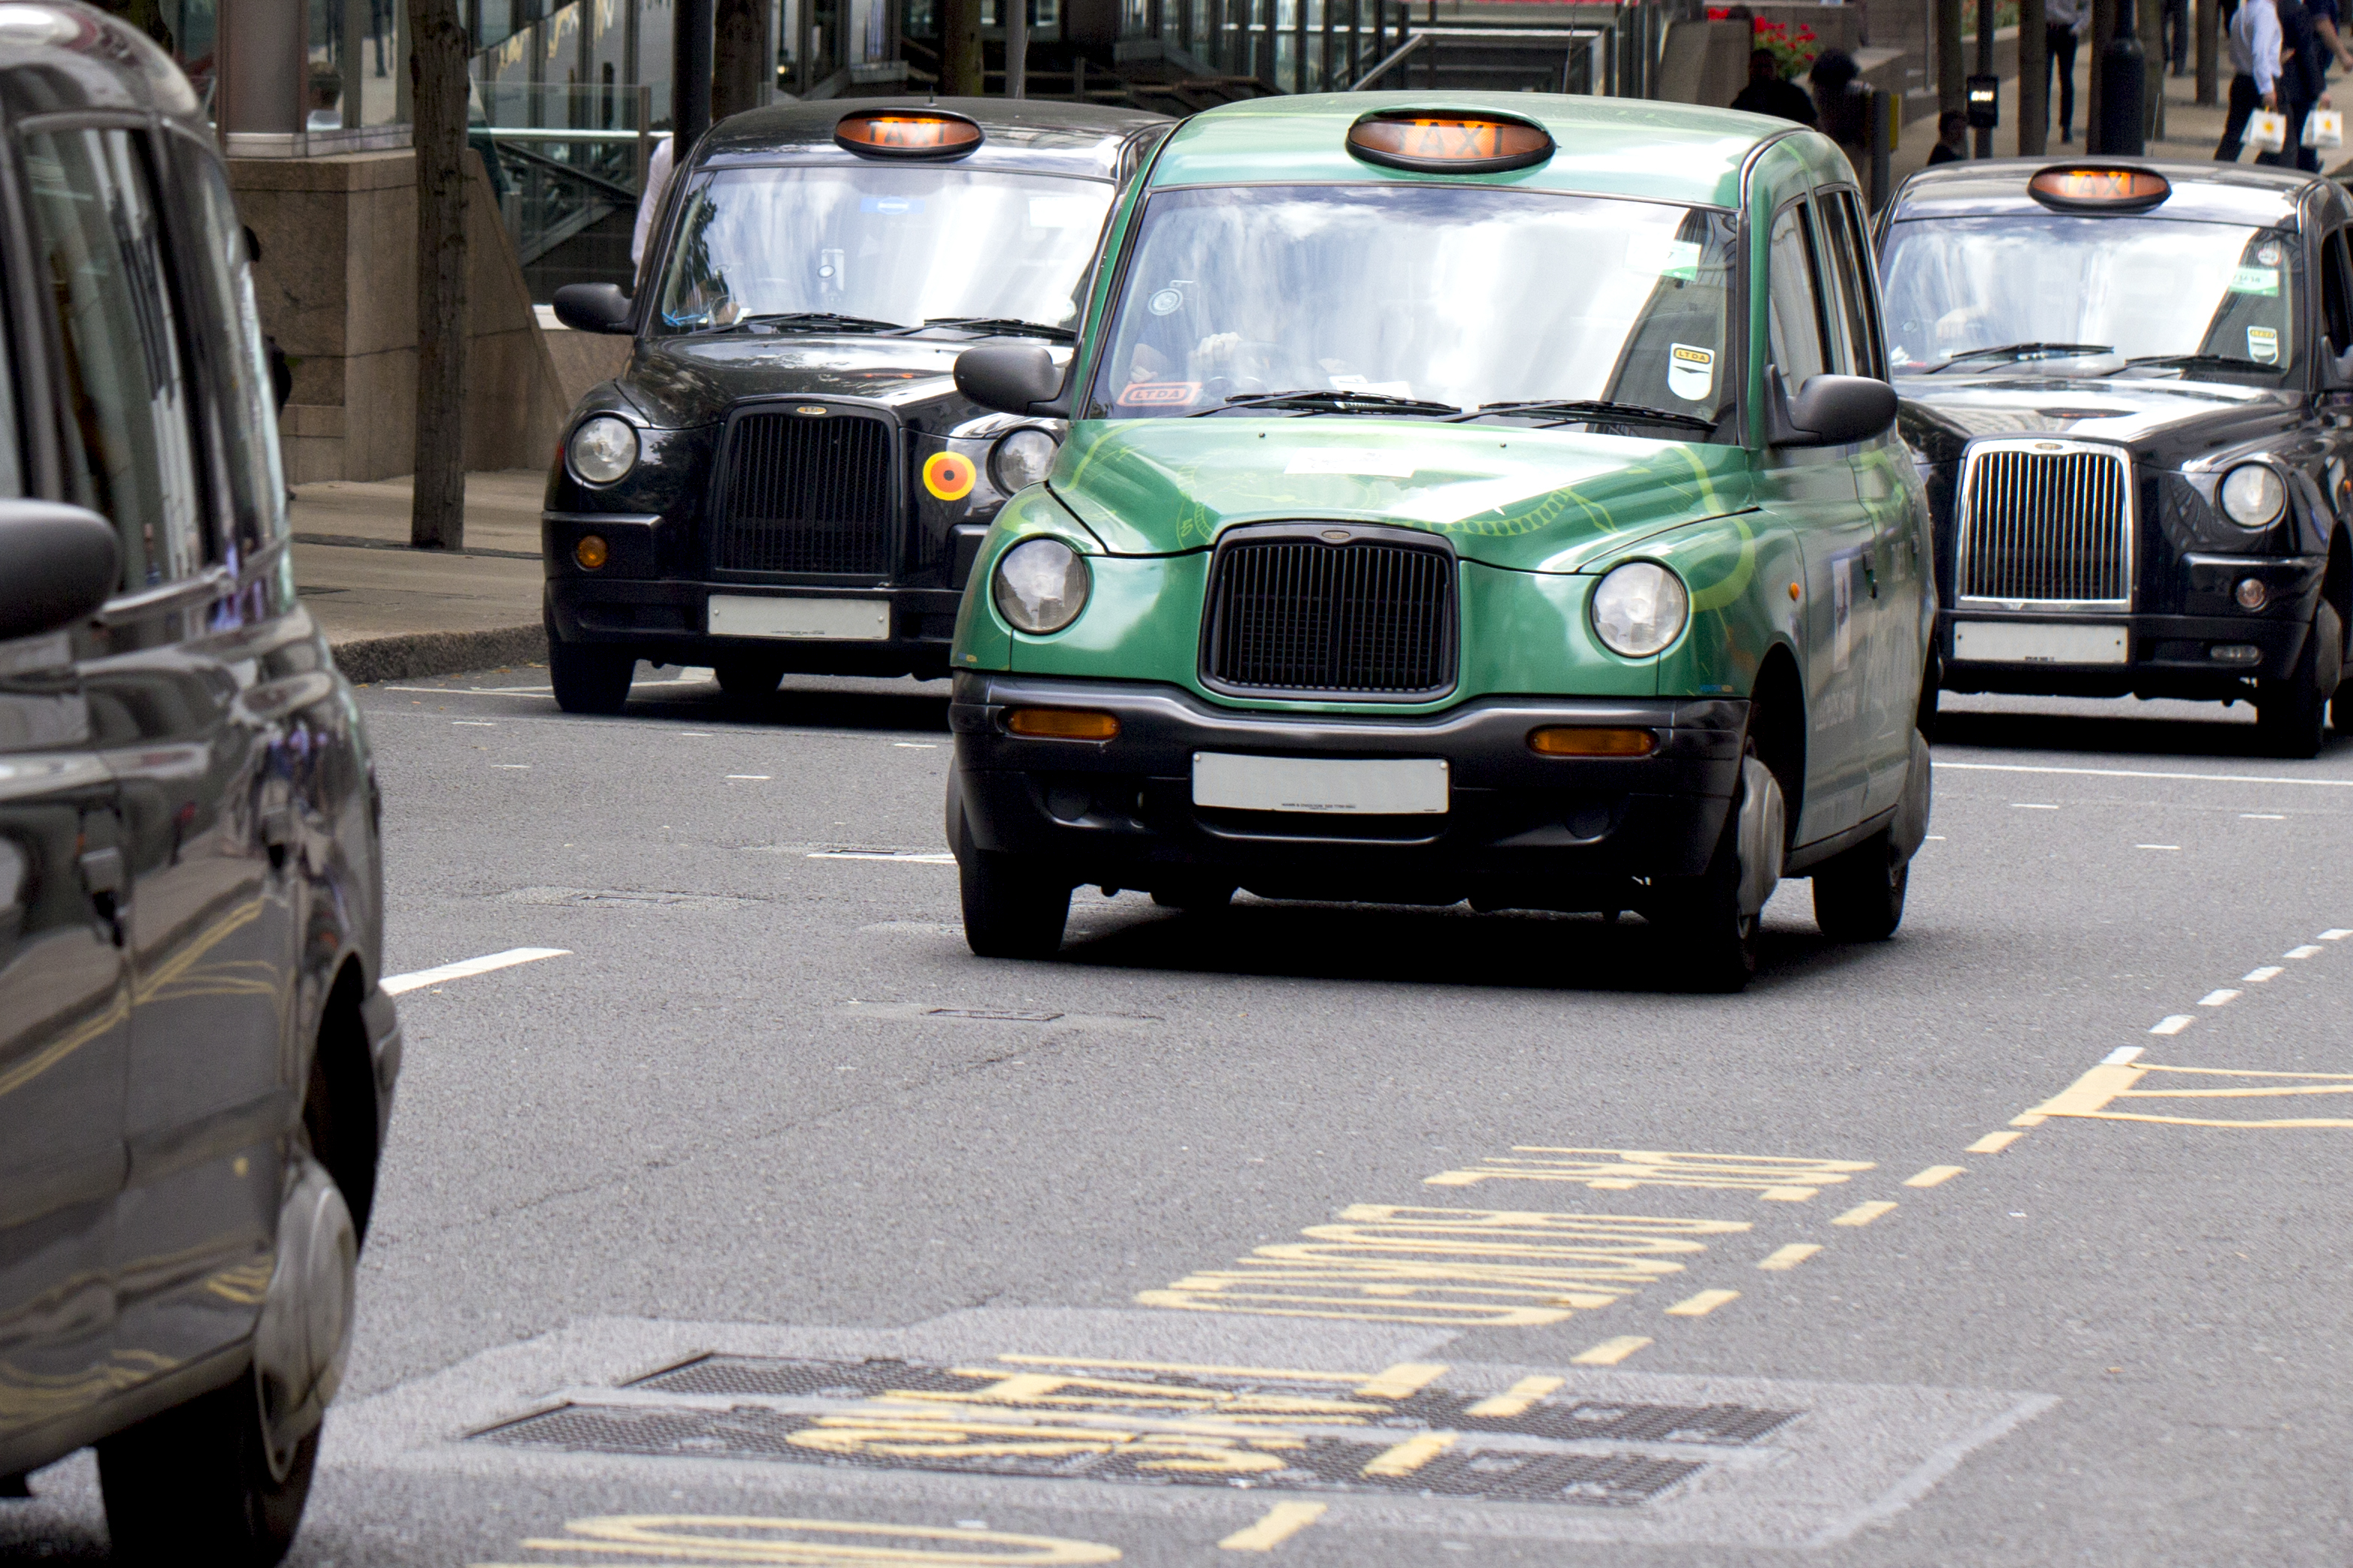 A Hackney Carriage travelling along a busy London road surrounded by other taxis